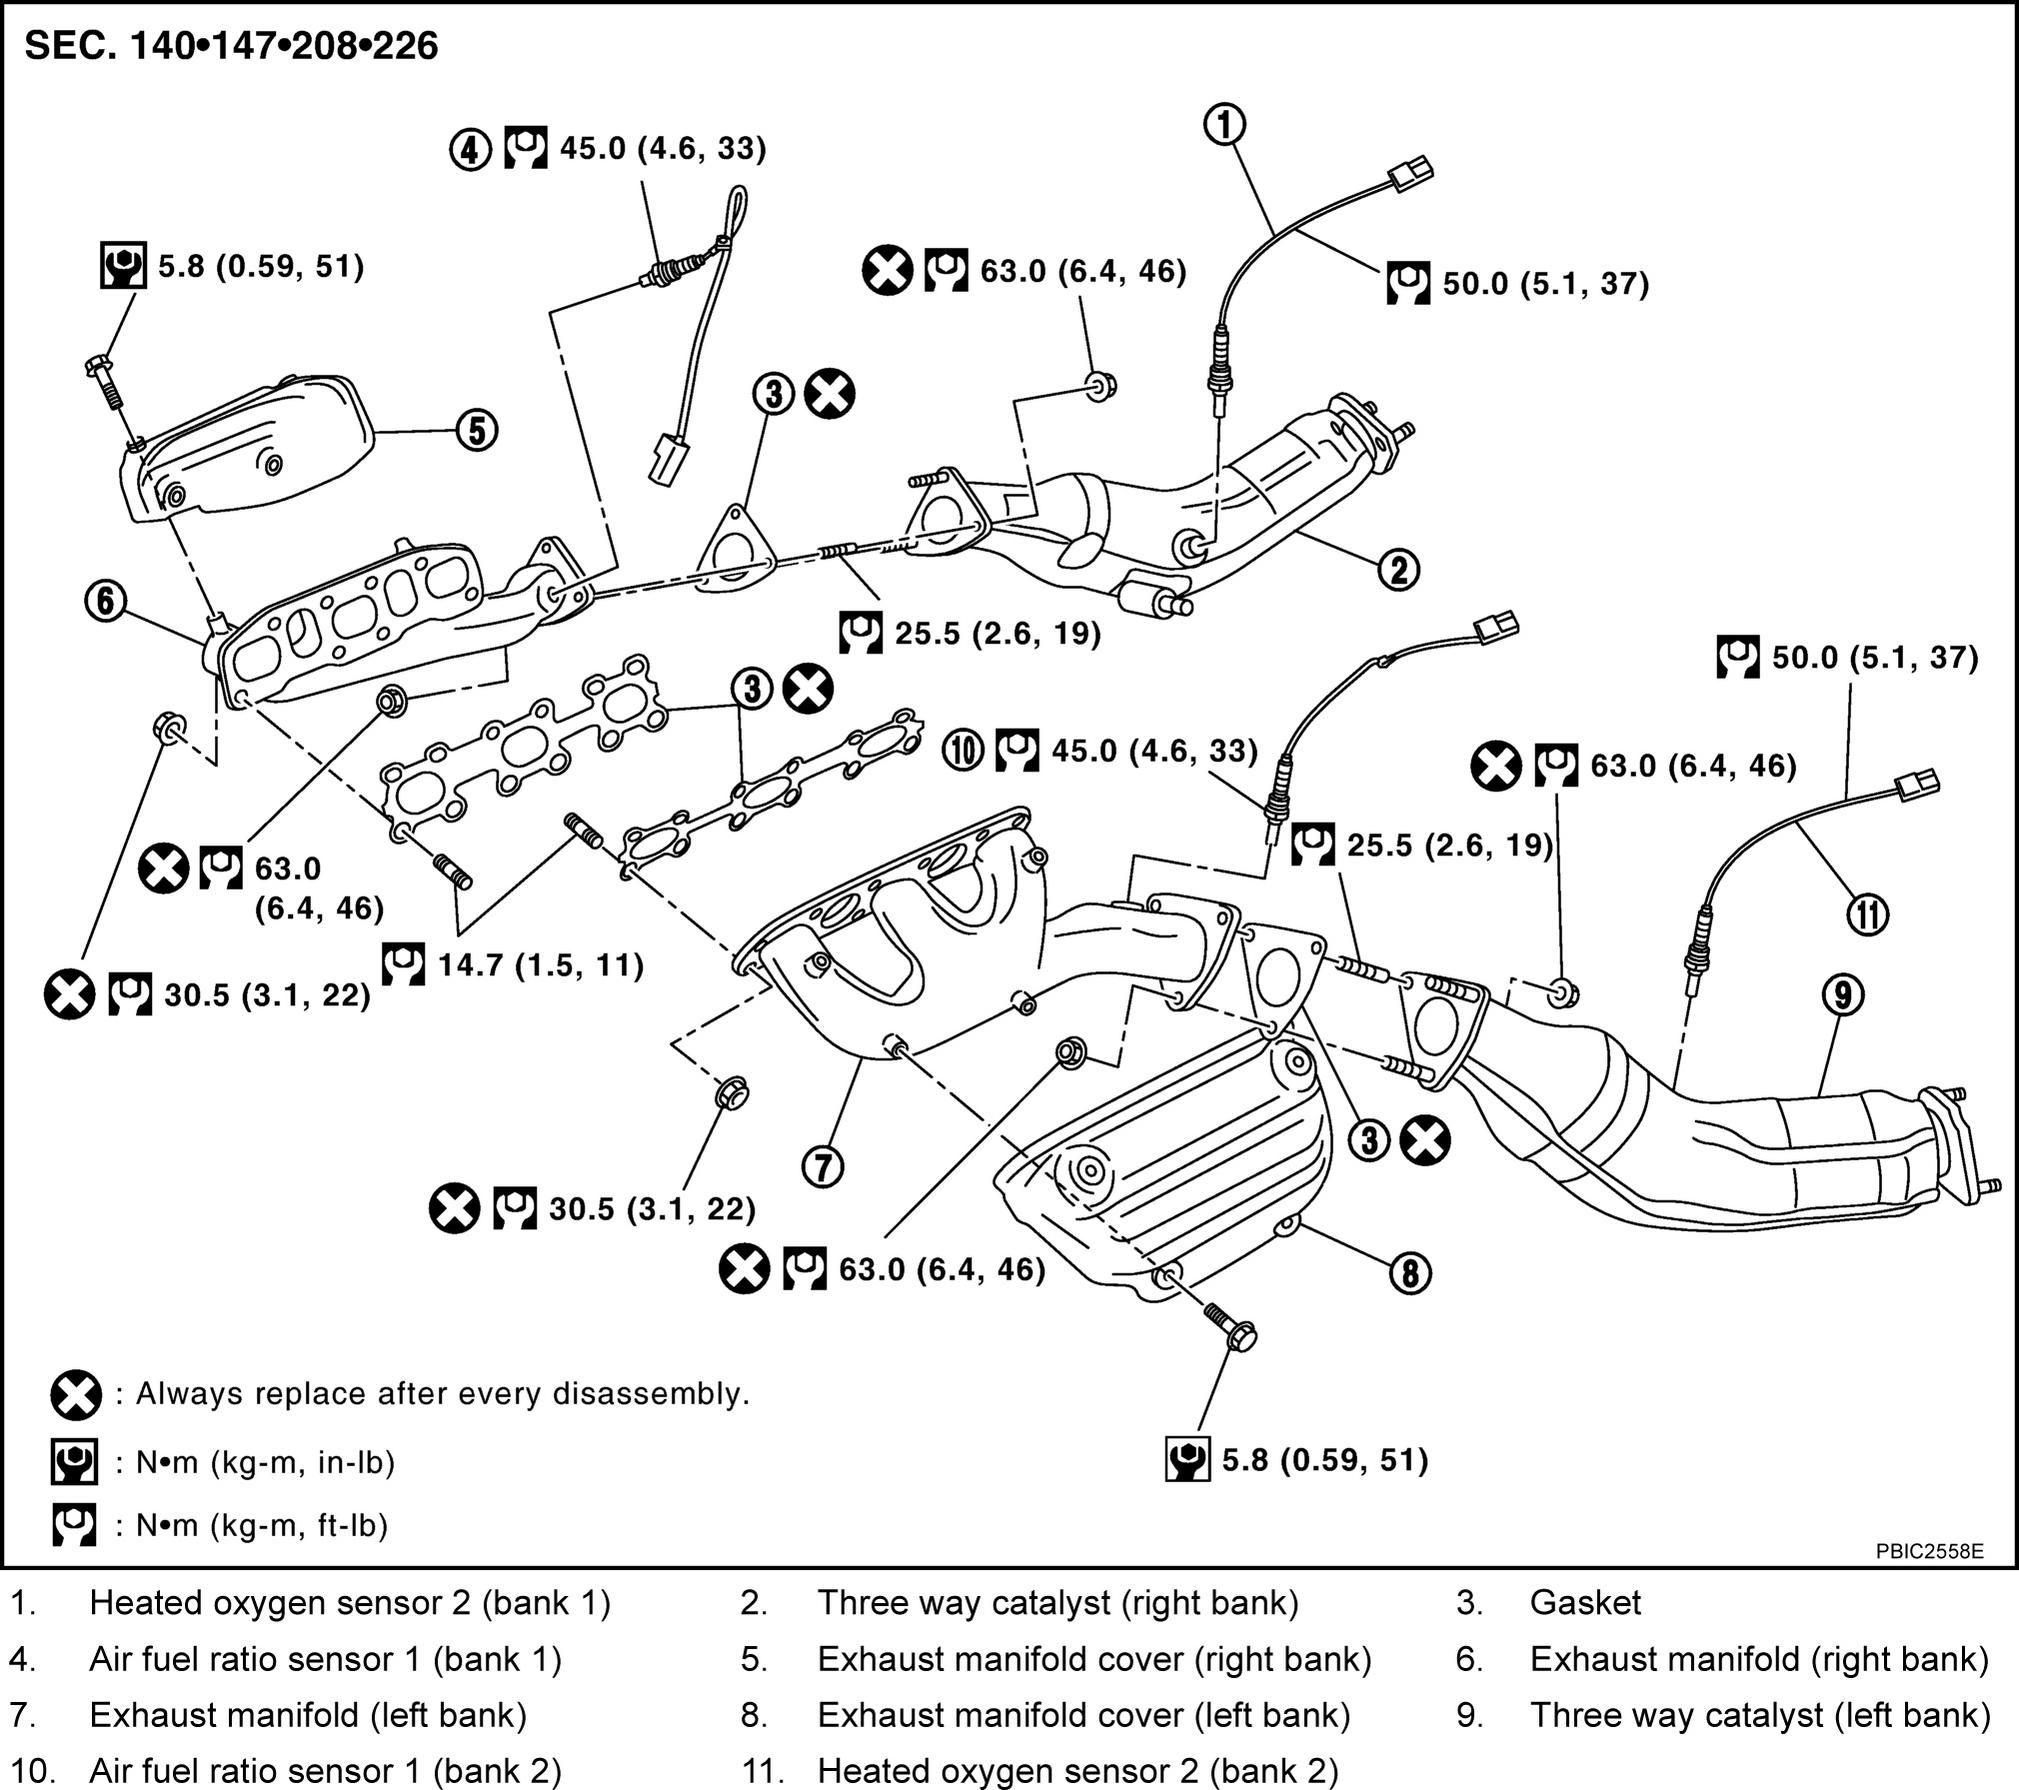 Nissan 350z Bank 1 Diagram